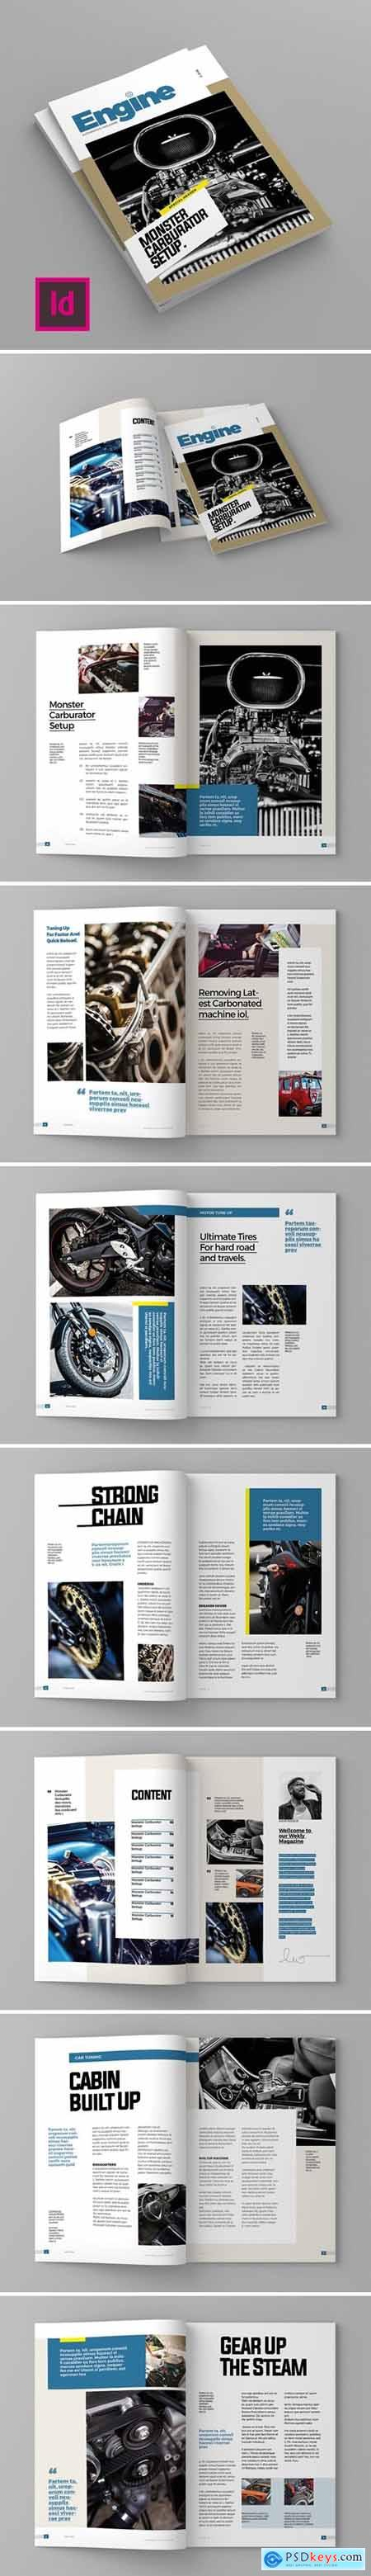 Engine - Magazine Template